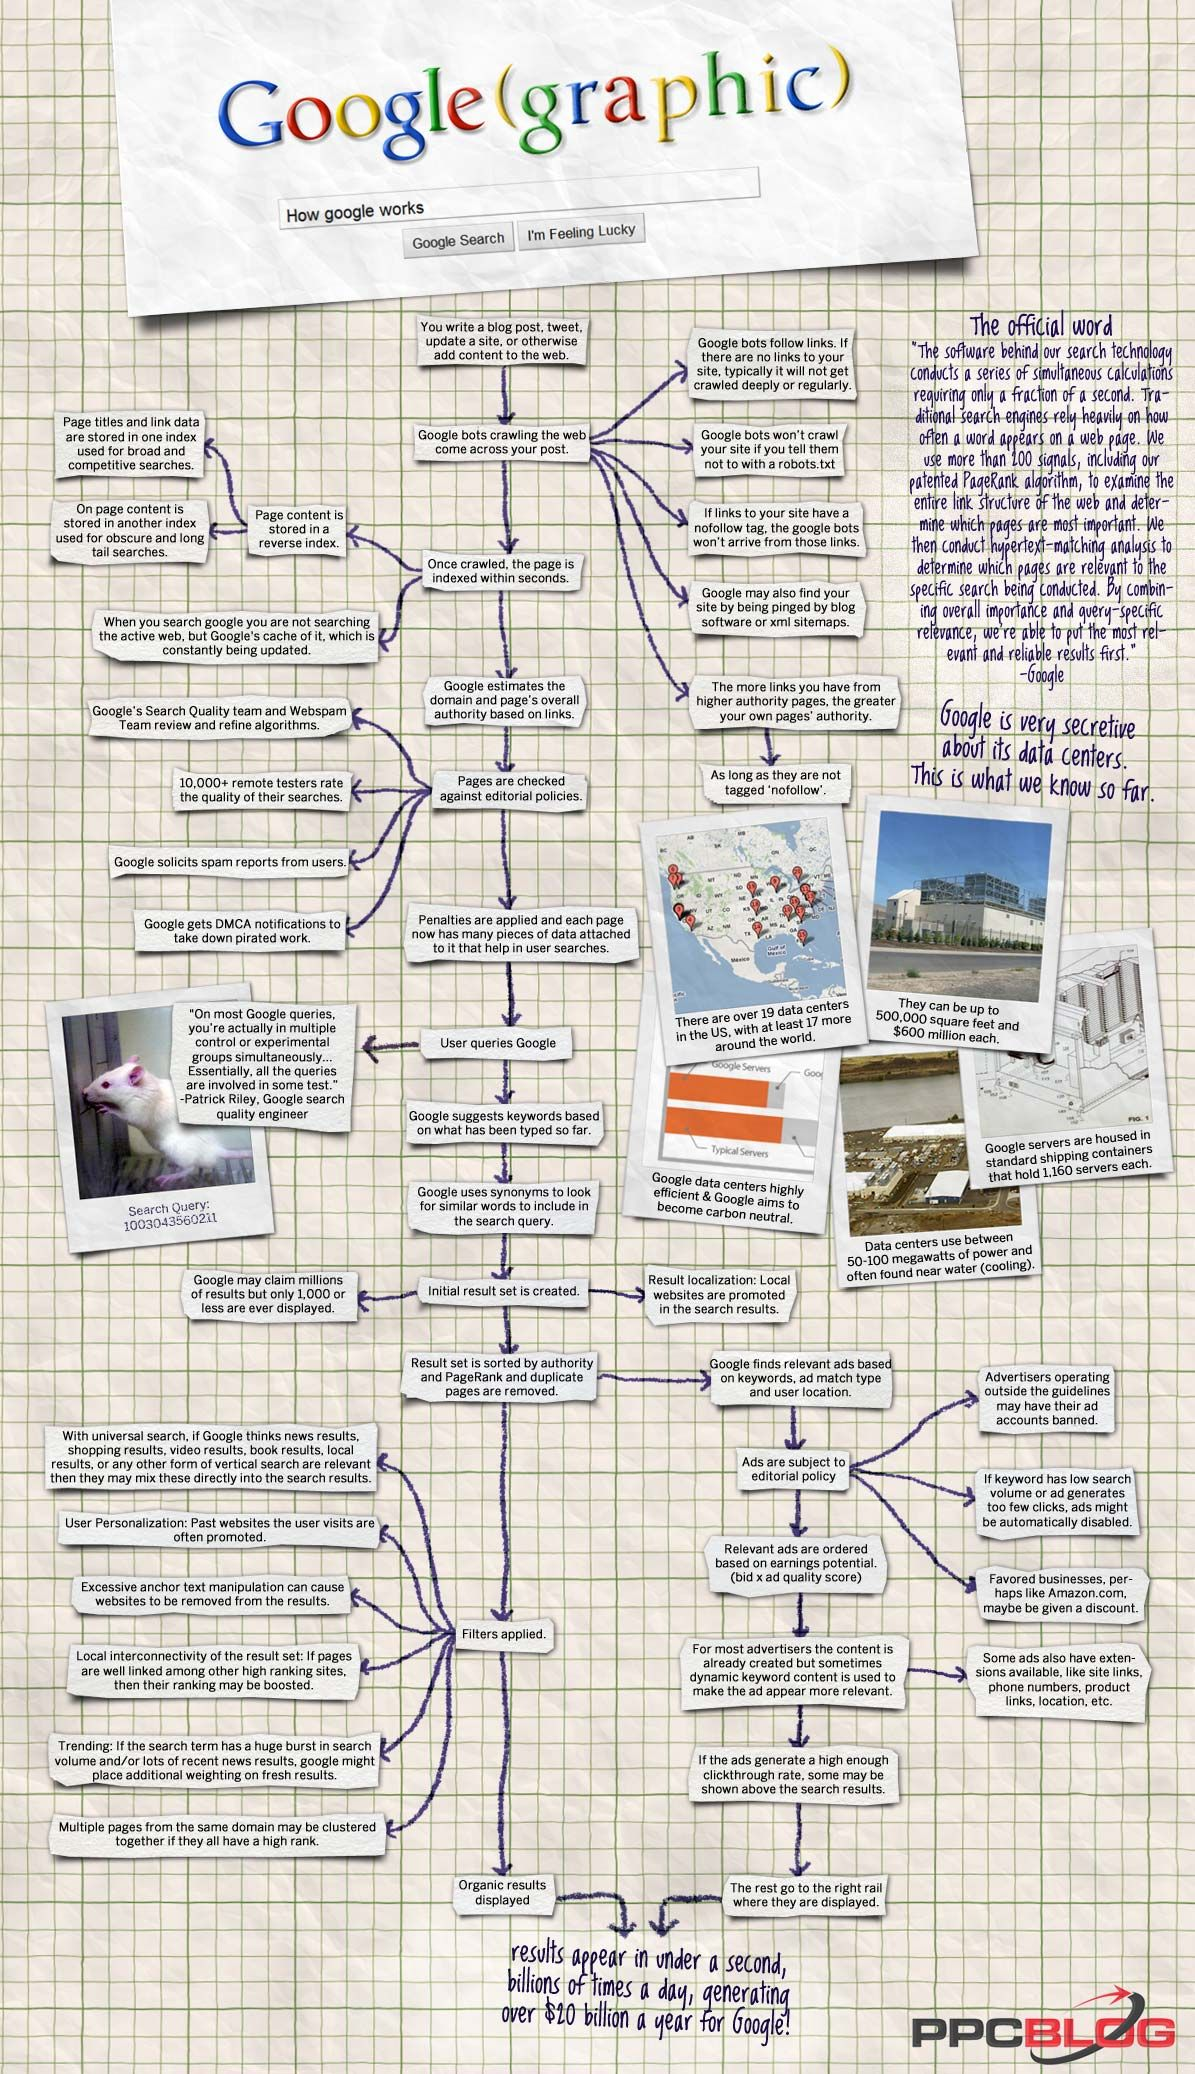 How Google Works: Overview Of The Powerful Search Engine ...